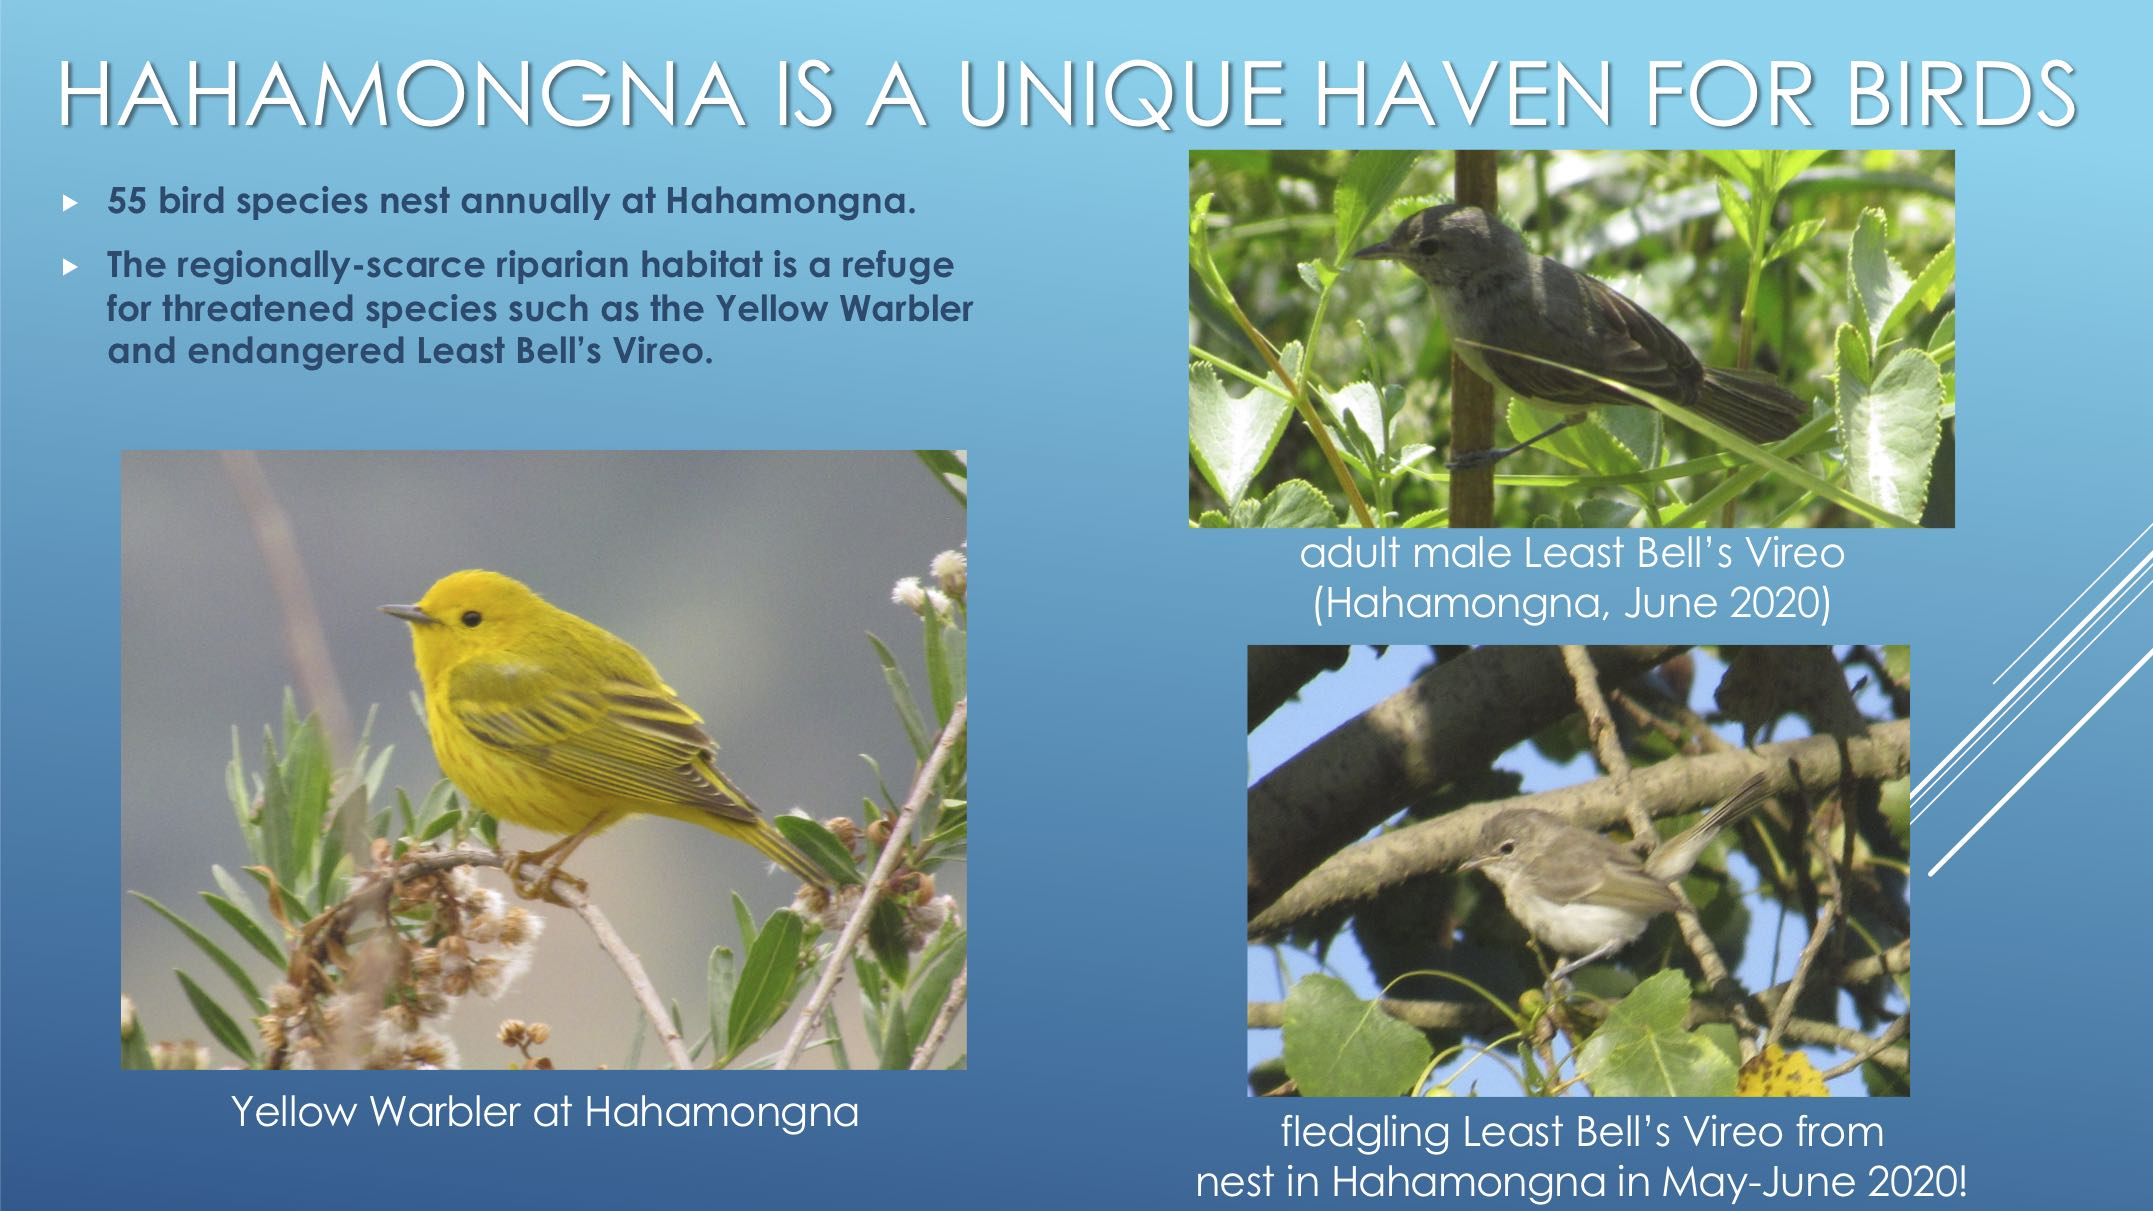 hahamonga is a unique haven for birds